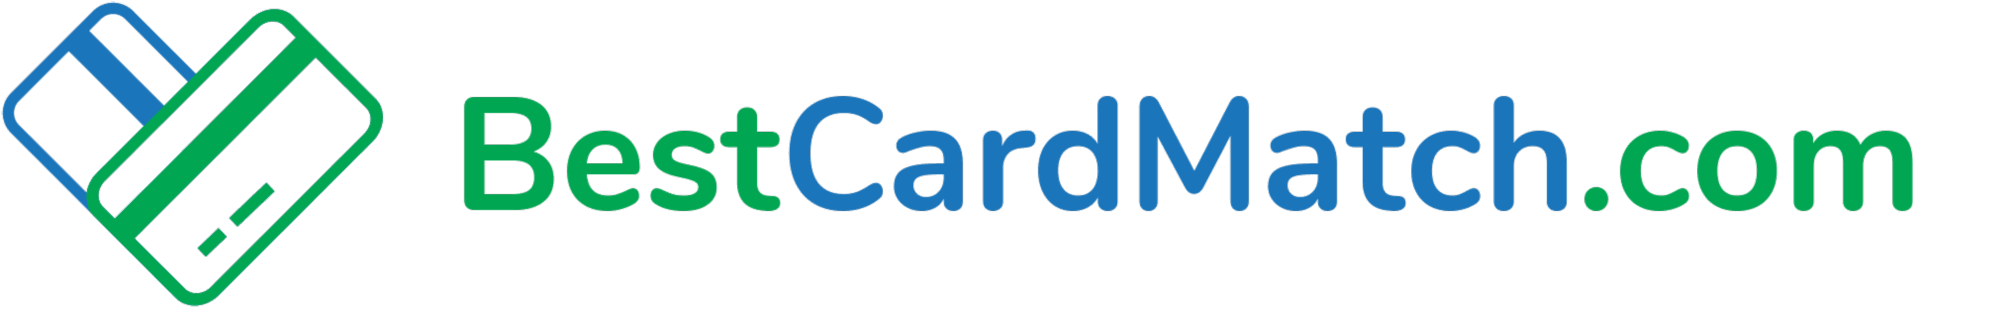 Best Card Match | 2018 Best Credit Cards